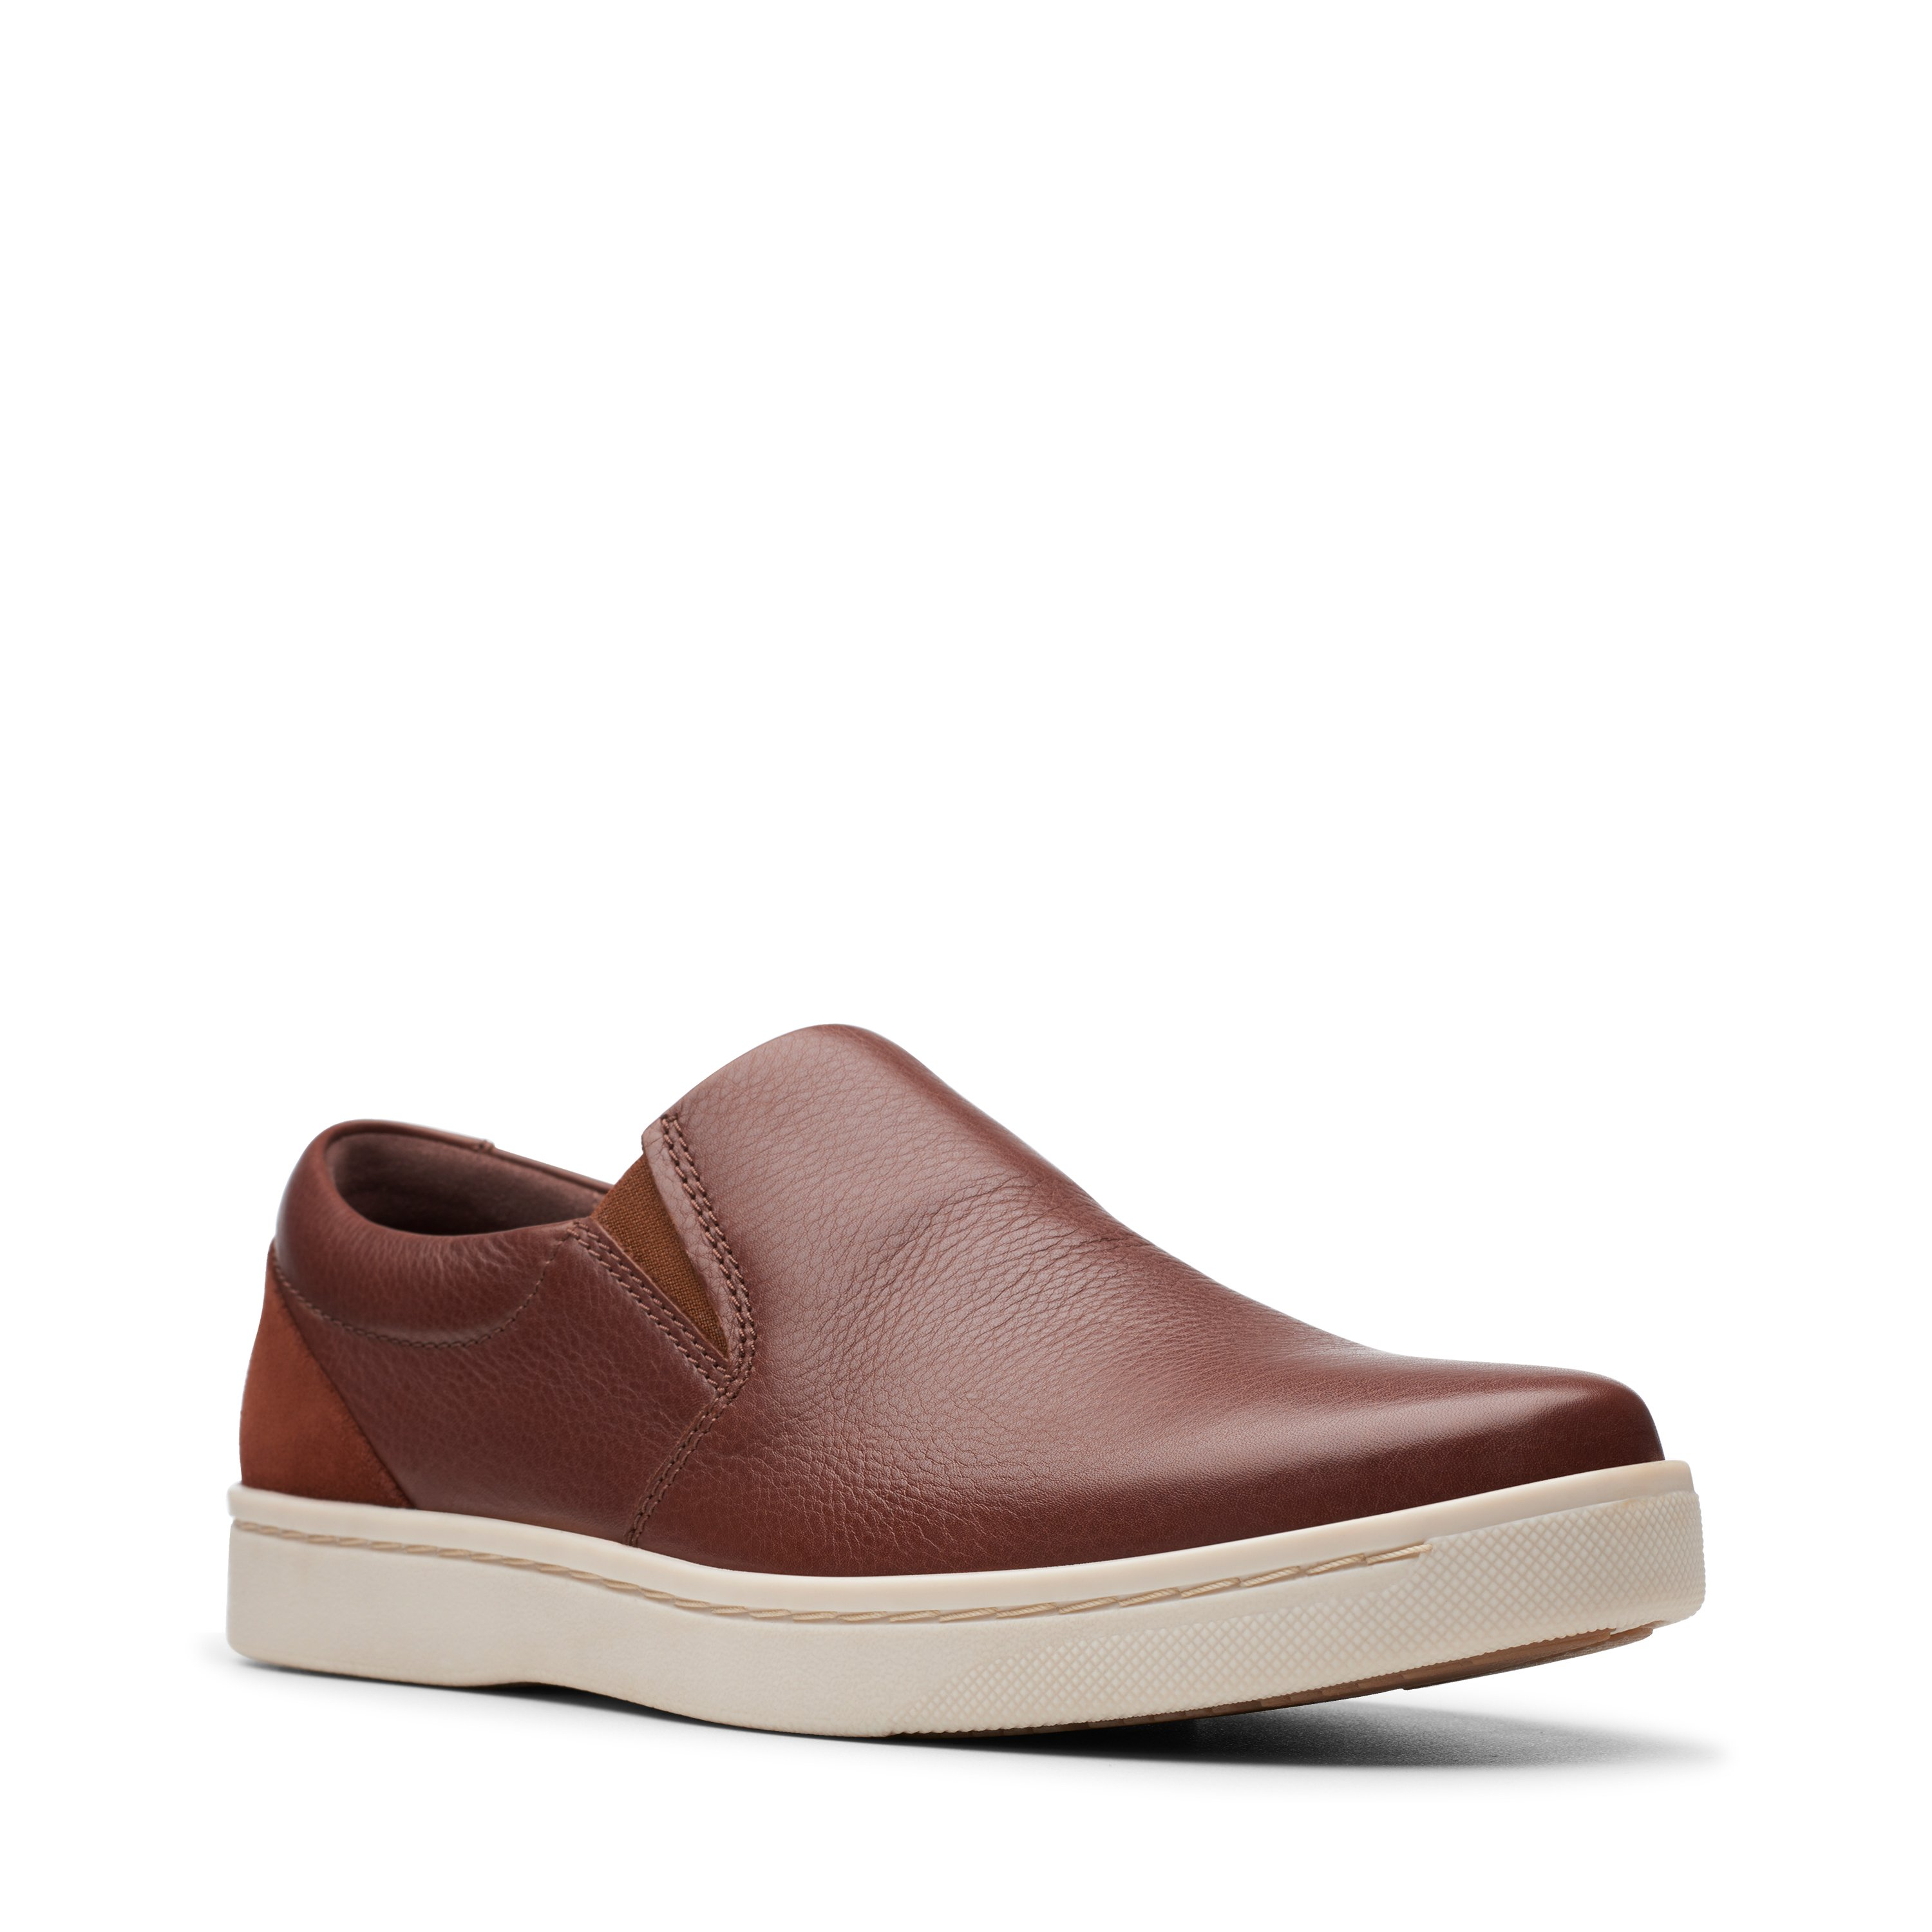 Clarks Kitna Free 26144886 Mahogany Leather